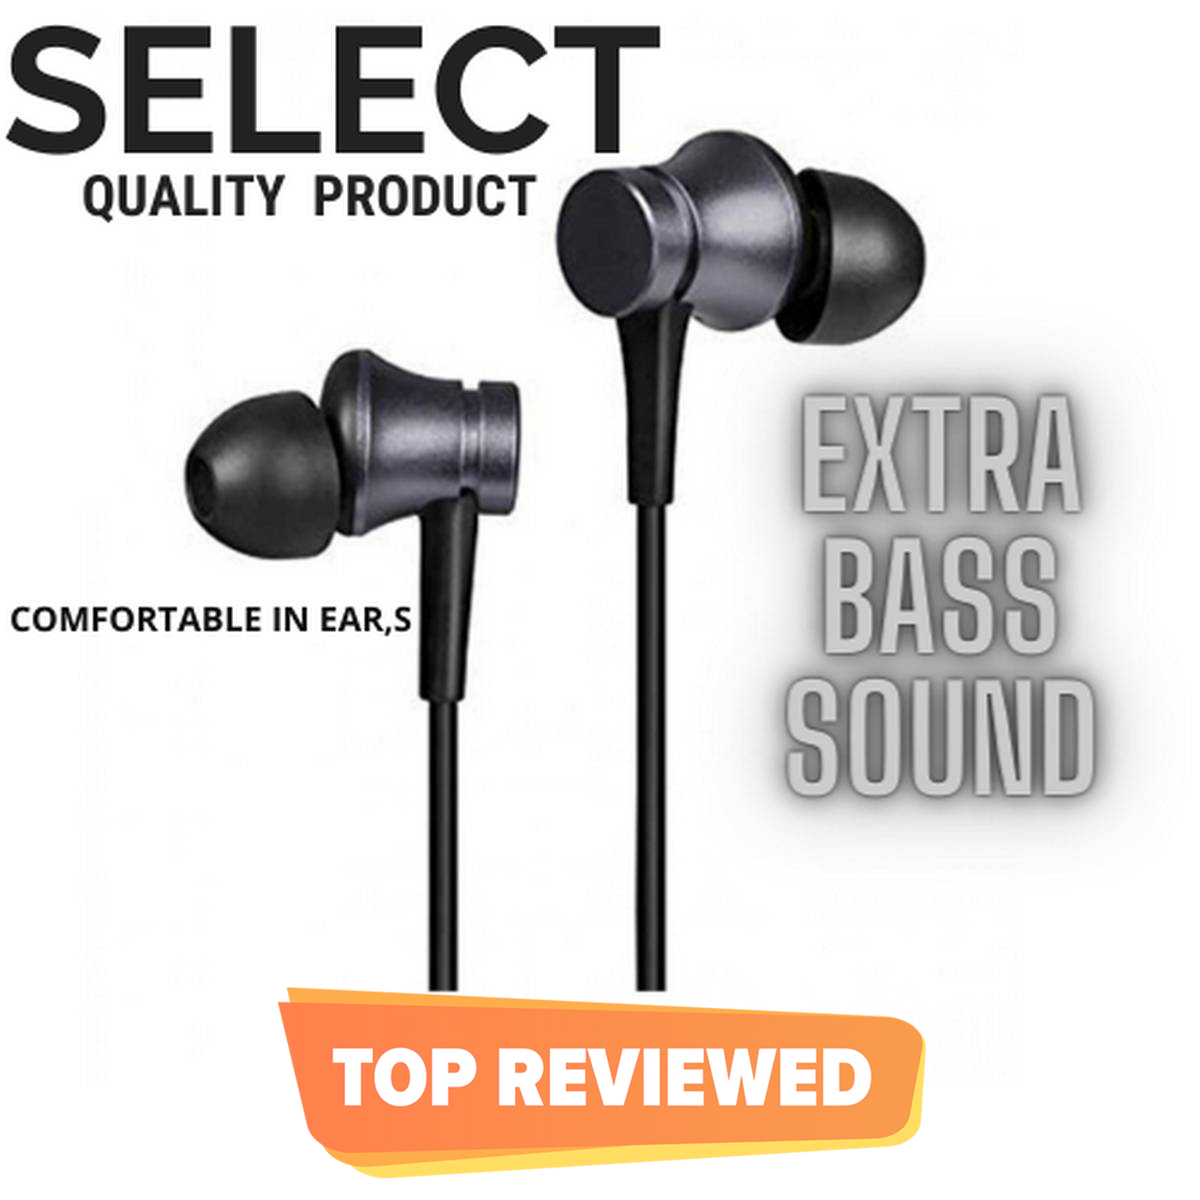 HANDSFREE ORIGINAL WITH MIC FOR ALL ANDROID MOBILE PHONES WITH EXTRA BASS SOUND